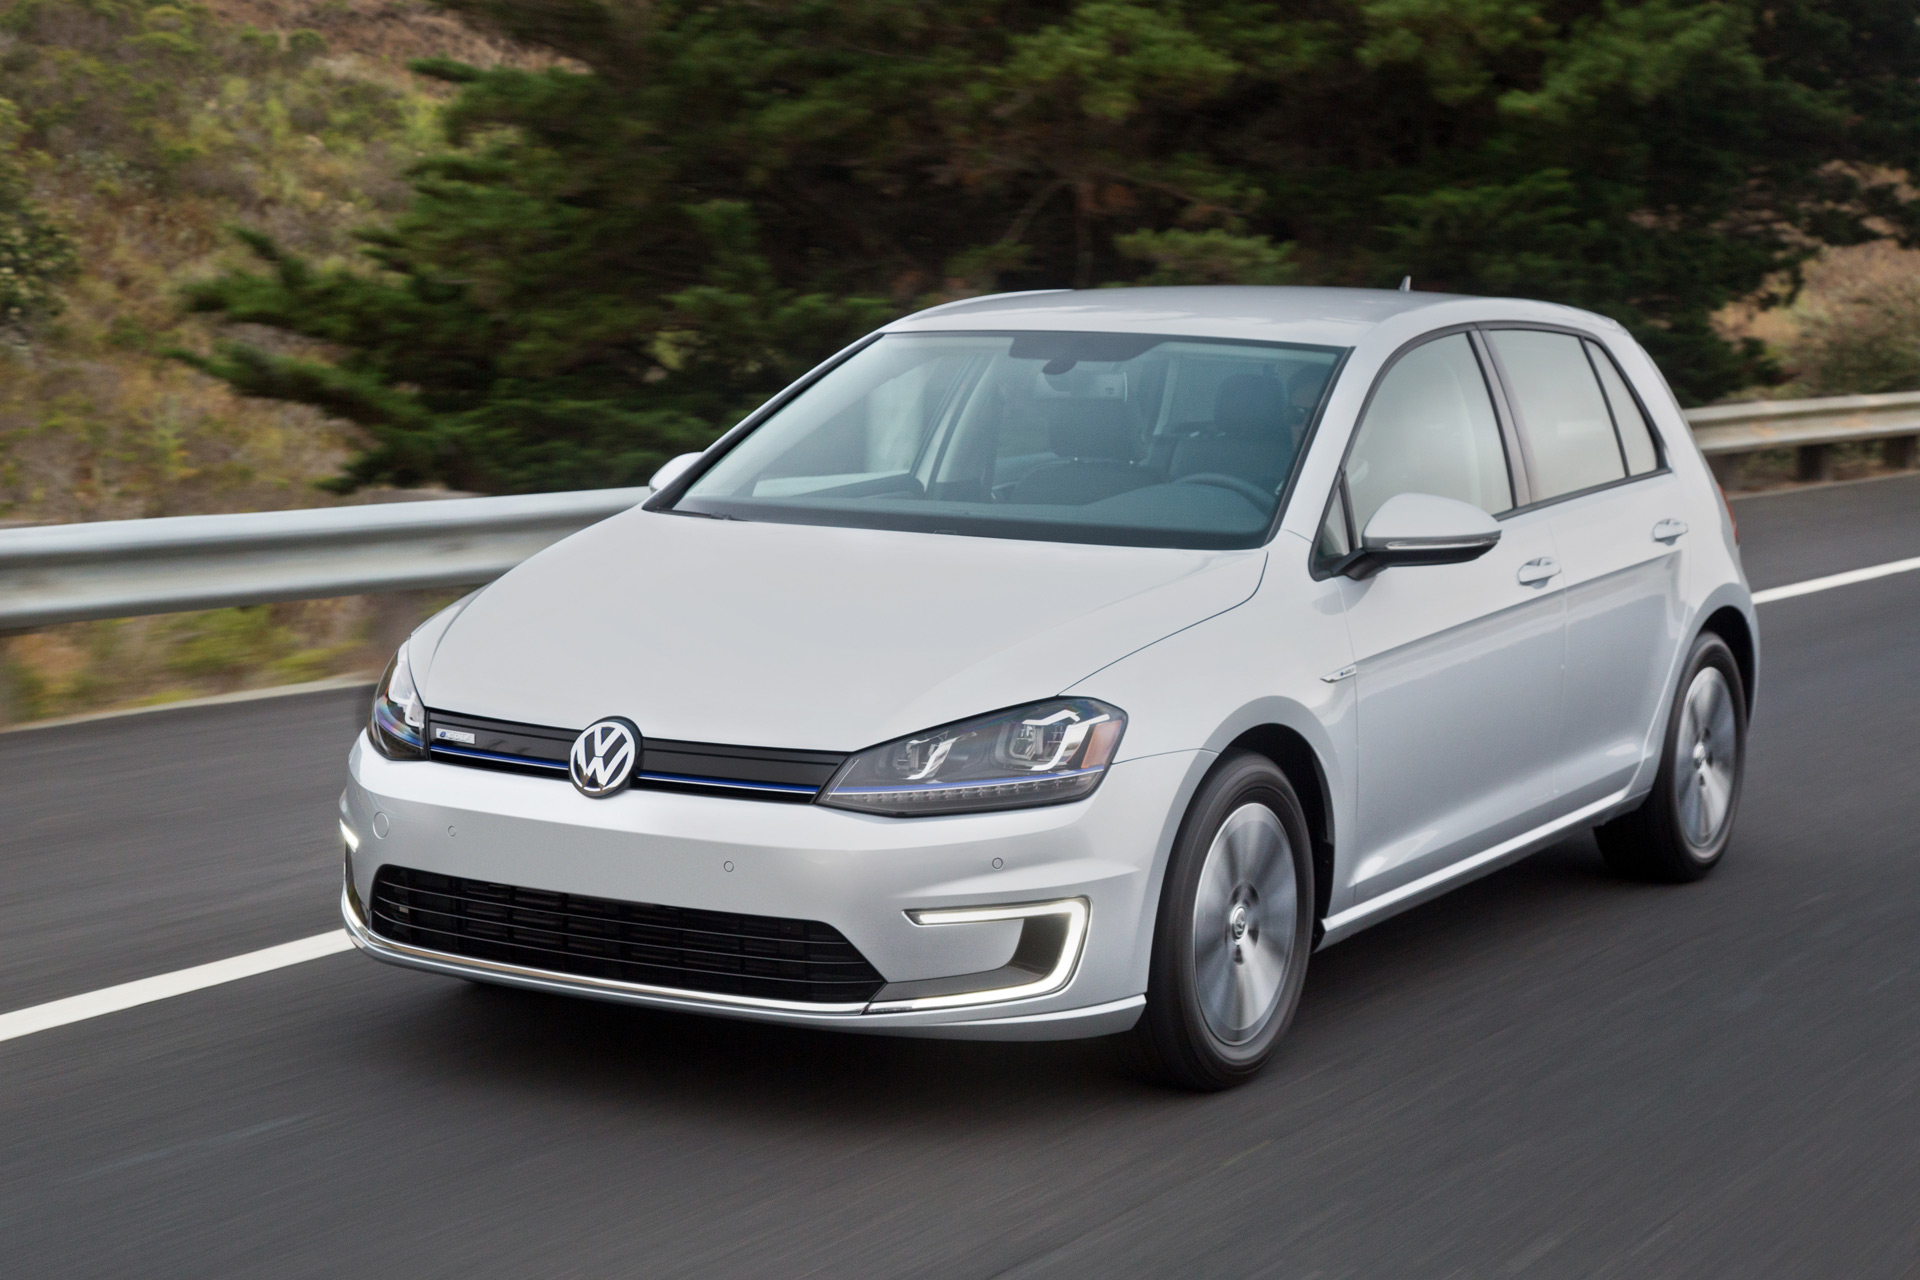 2016 Volkswagen E Golf Vw Review Ratings Specs Prices And Photos The Car Connection